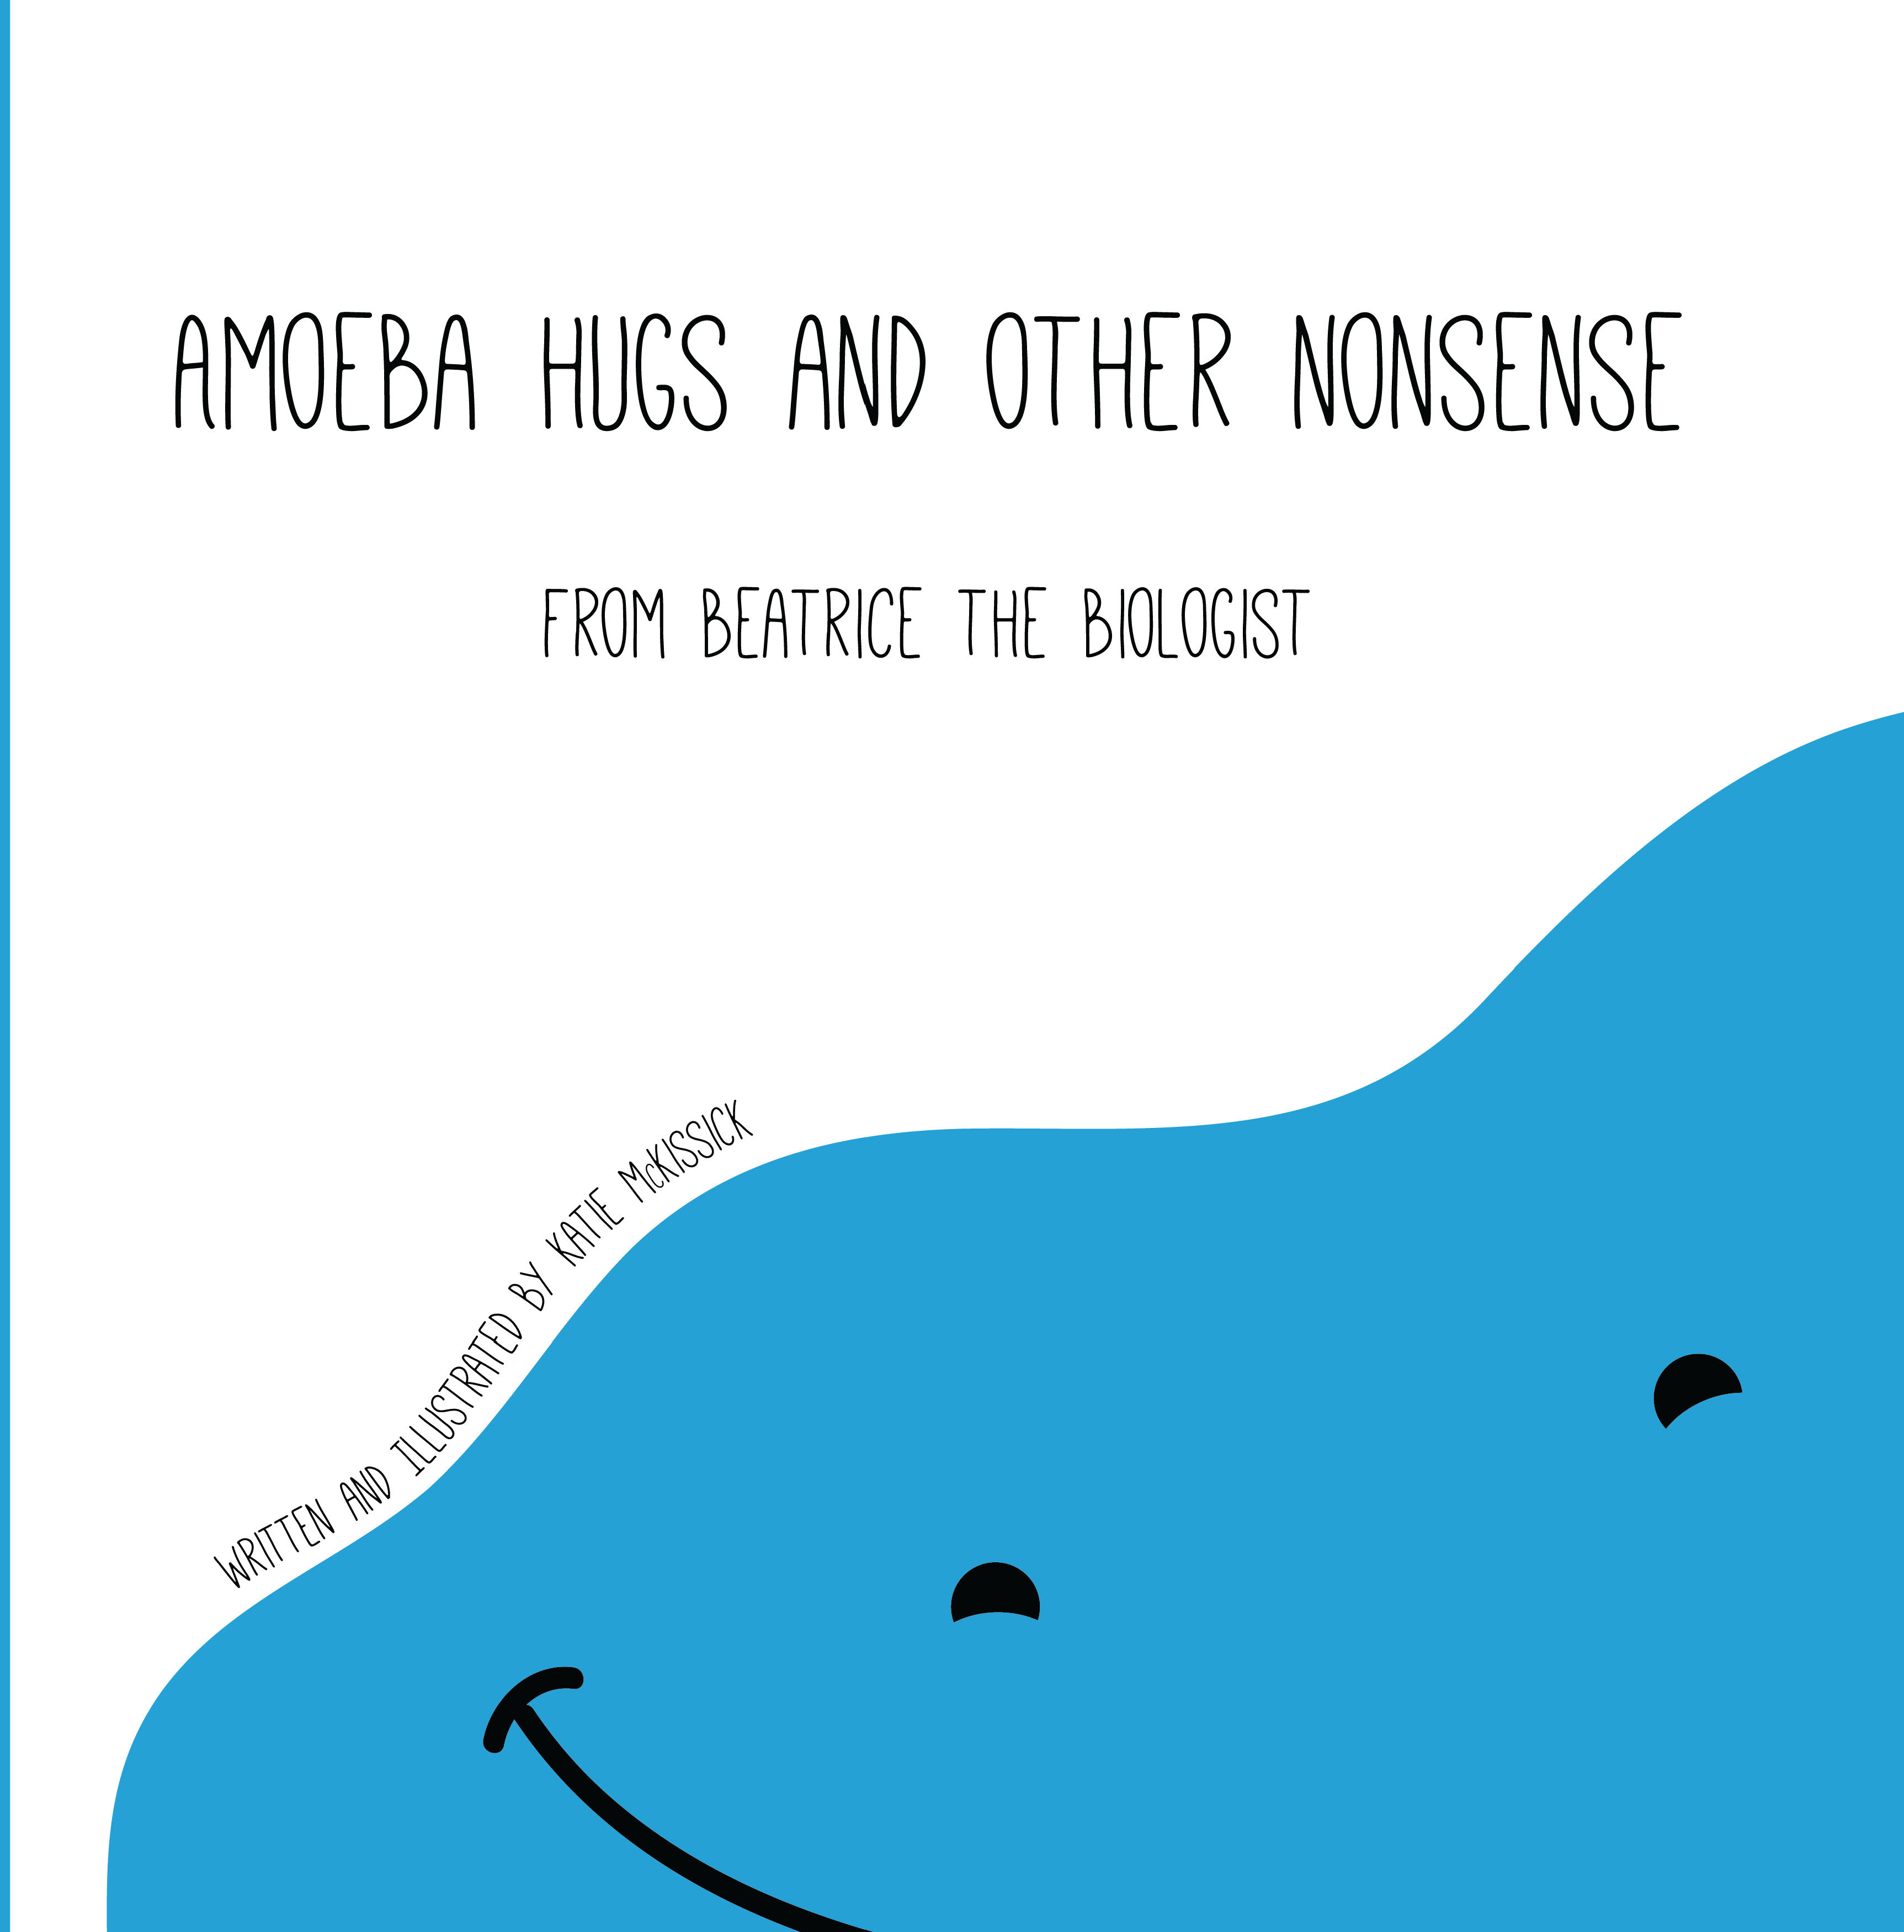 Cover of AMOEBA HUGS by Beatrice the Biologist